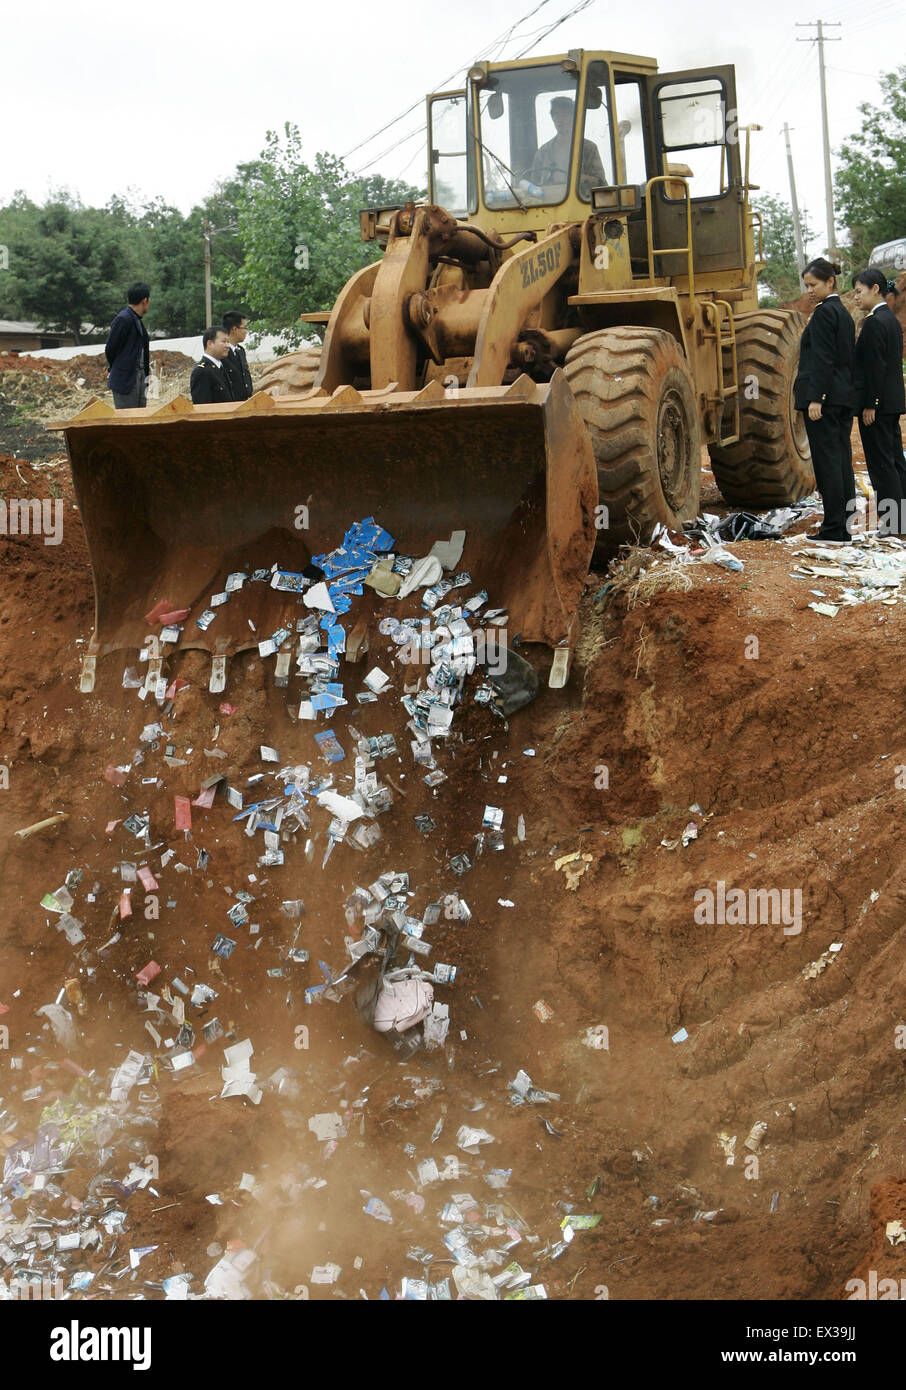 Customs officers  destroyed counterfeit branded goods at a rubbish dump site in Kunming, Yunnan province April 26, - Stock Image